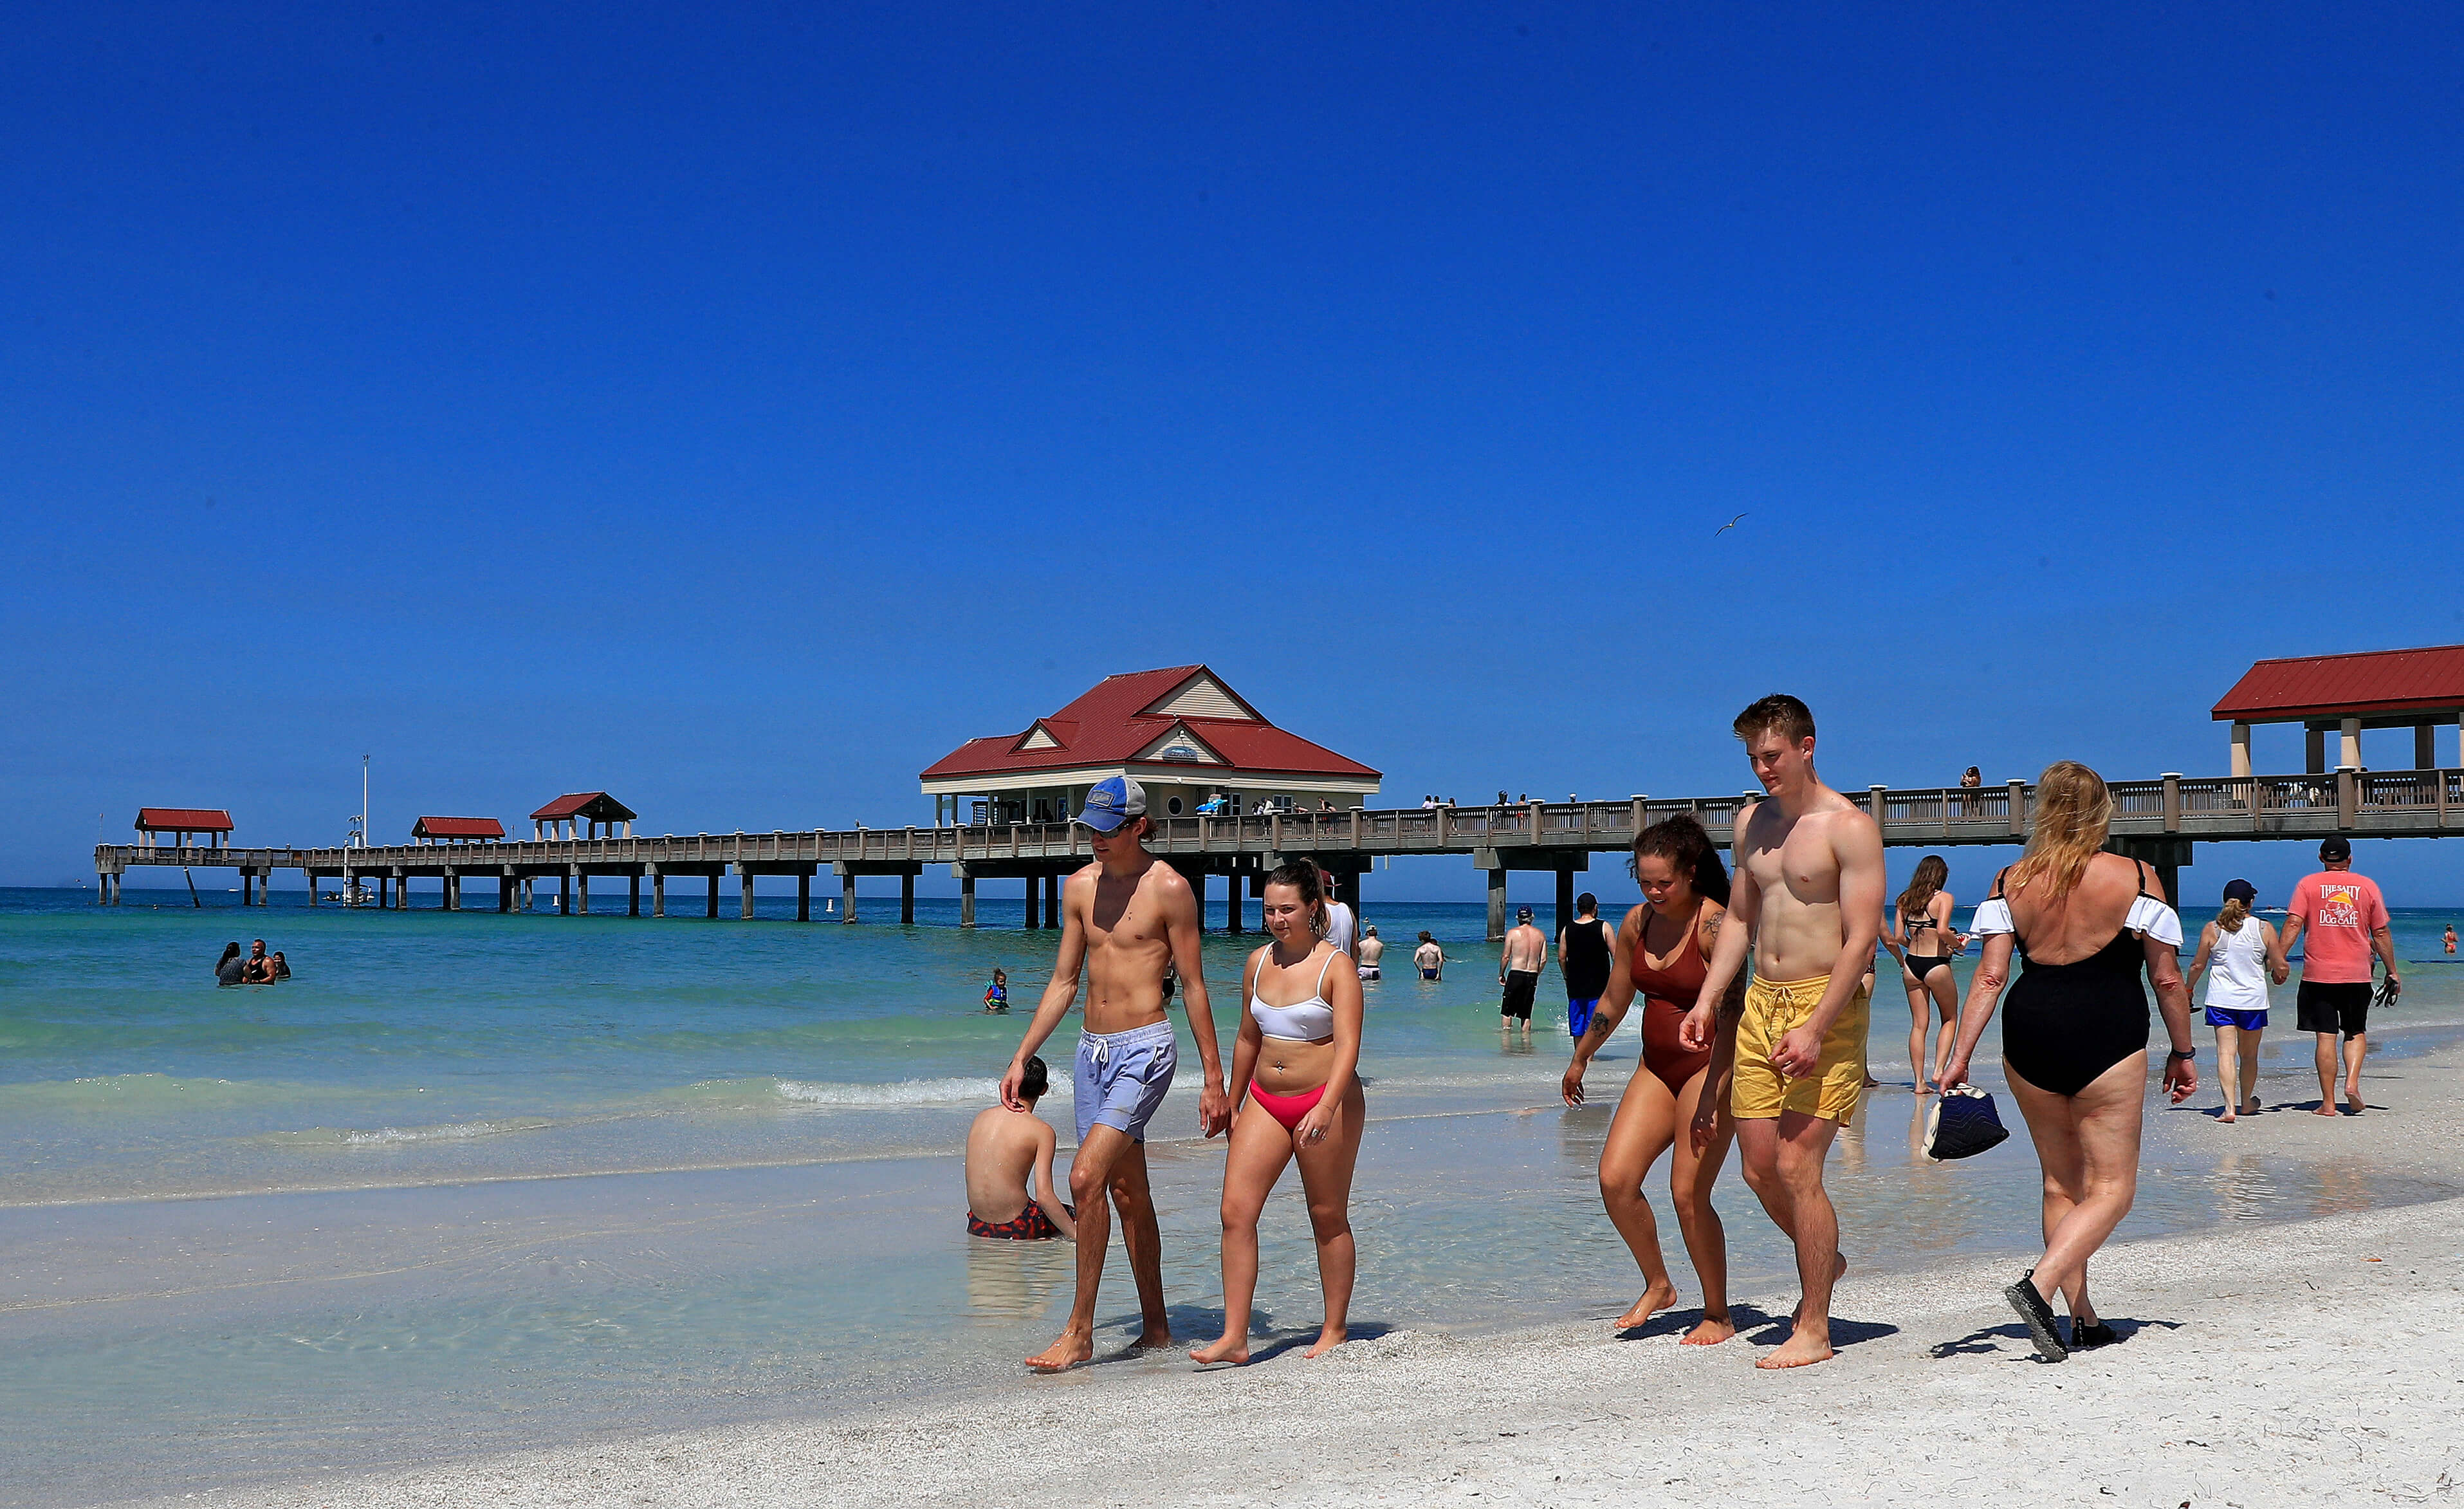 Can't travel? No problem. Here are spring break alternatives for 2021